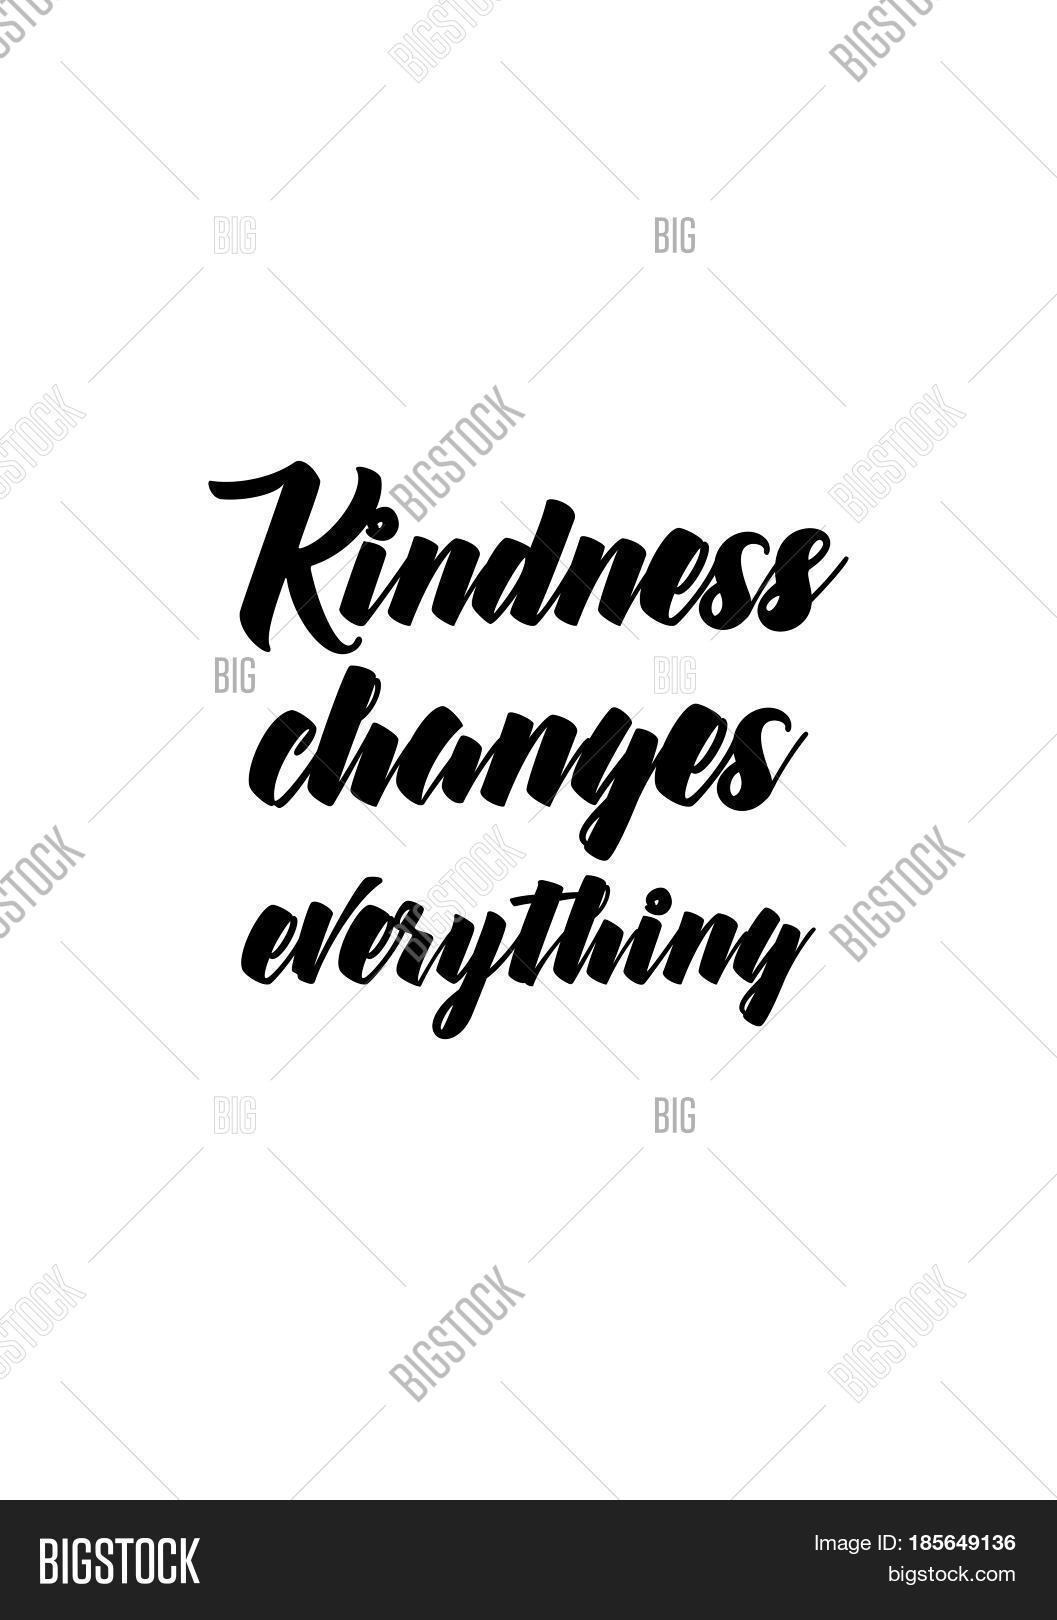 Quotes Kindness Lettering Quotes Motivation About Vector & Photo  Bigstock